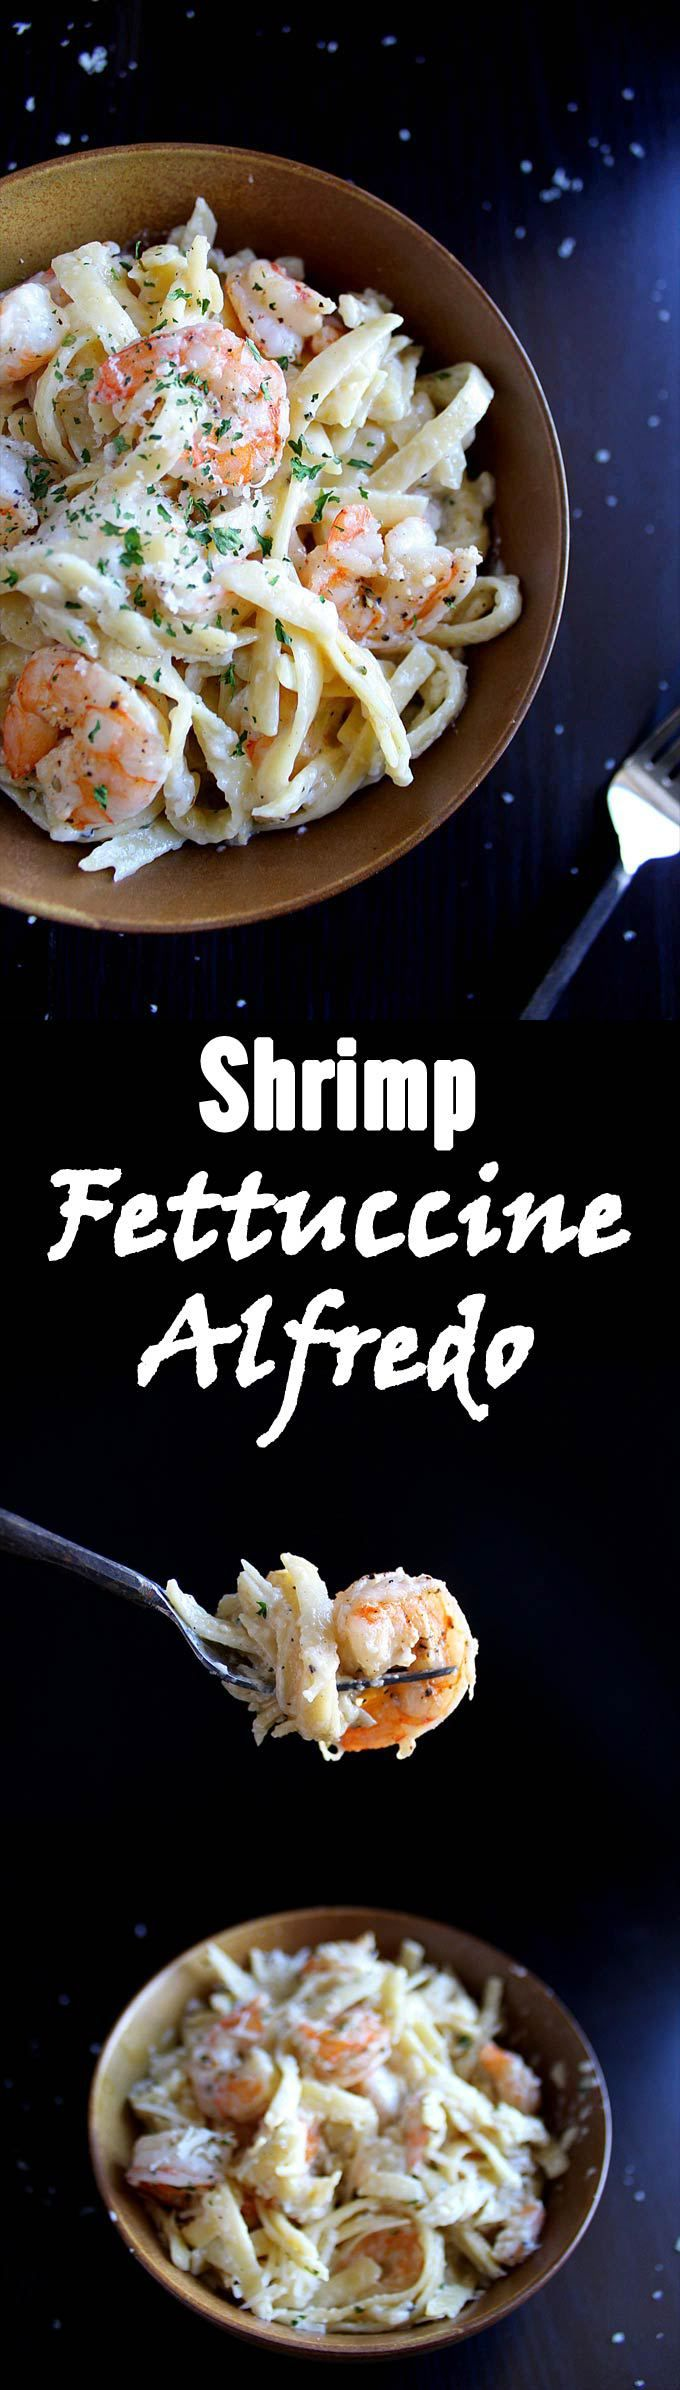 Garlic Shrimp Fettuccine Alfredo | Shrimp Pasta | Garlic Alfredo | Homemade Alfredo Sauce | Easy Dinner